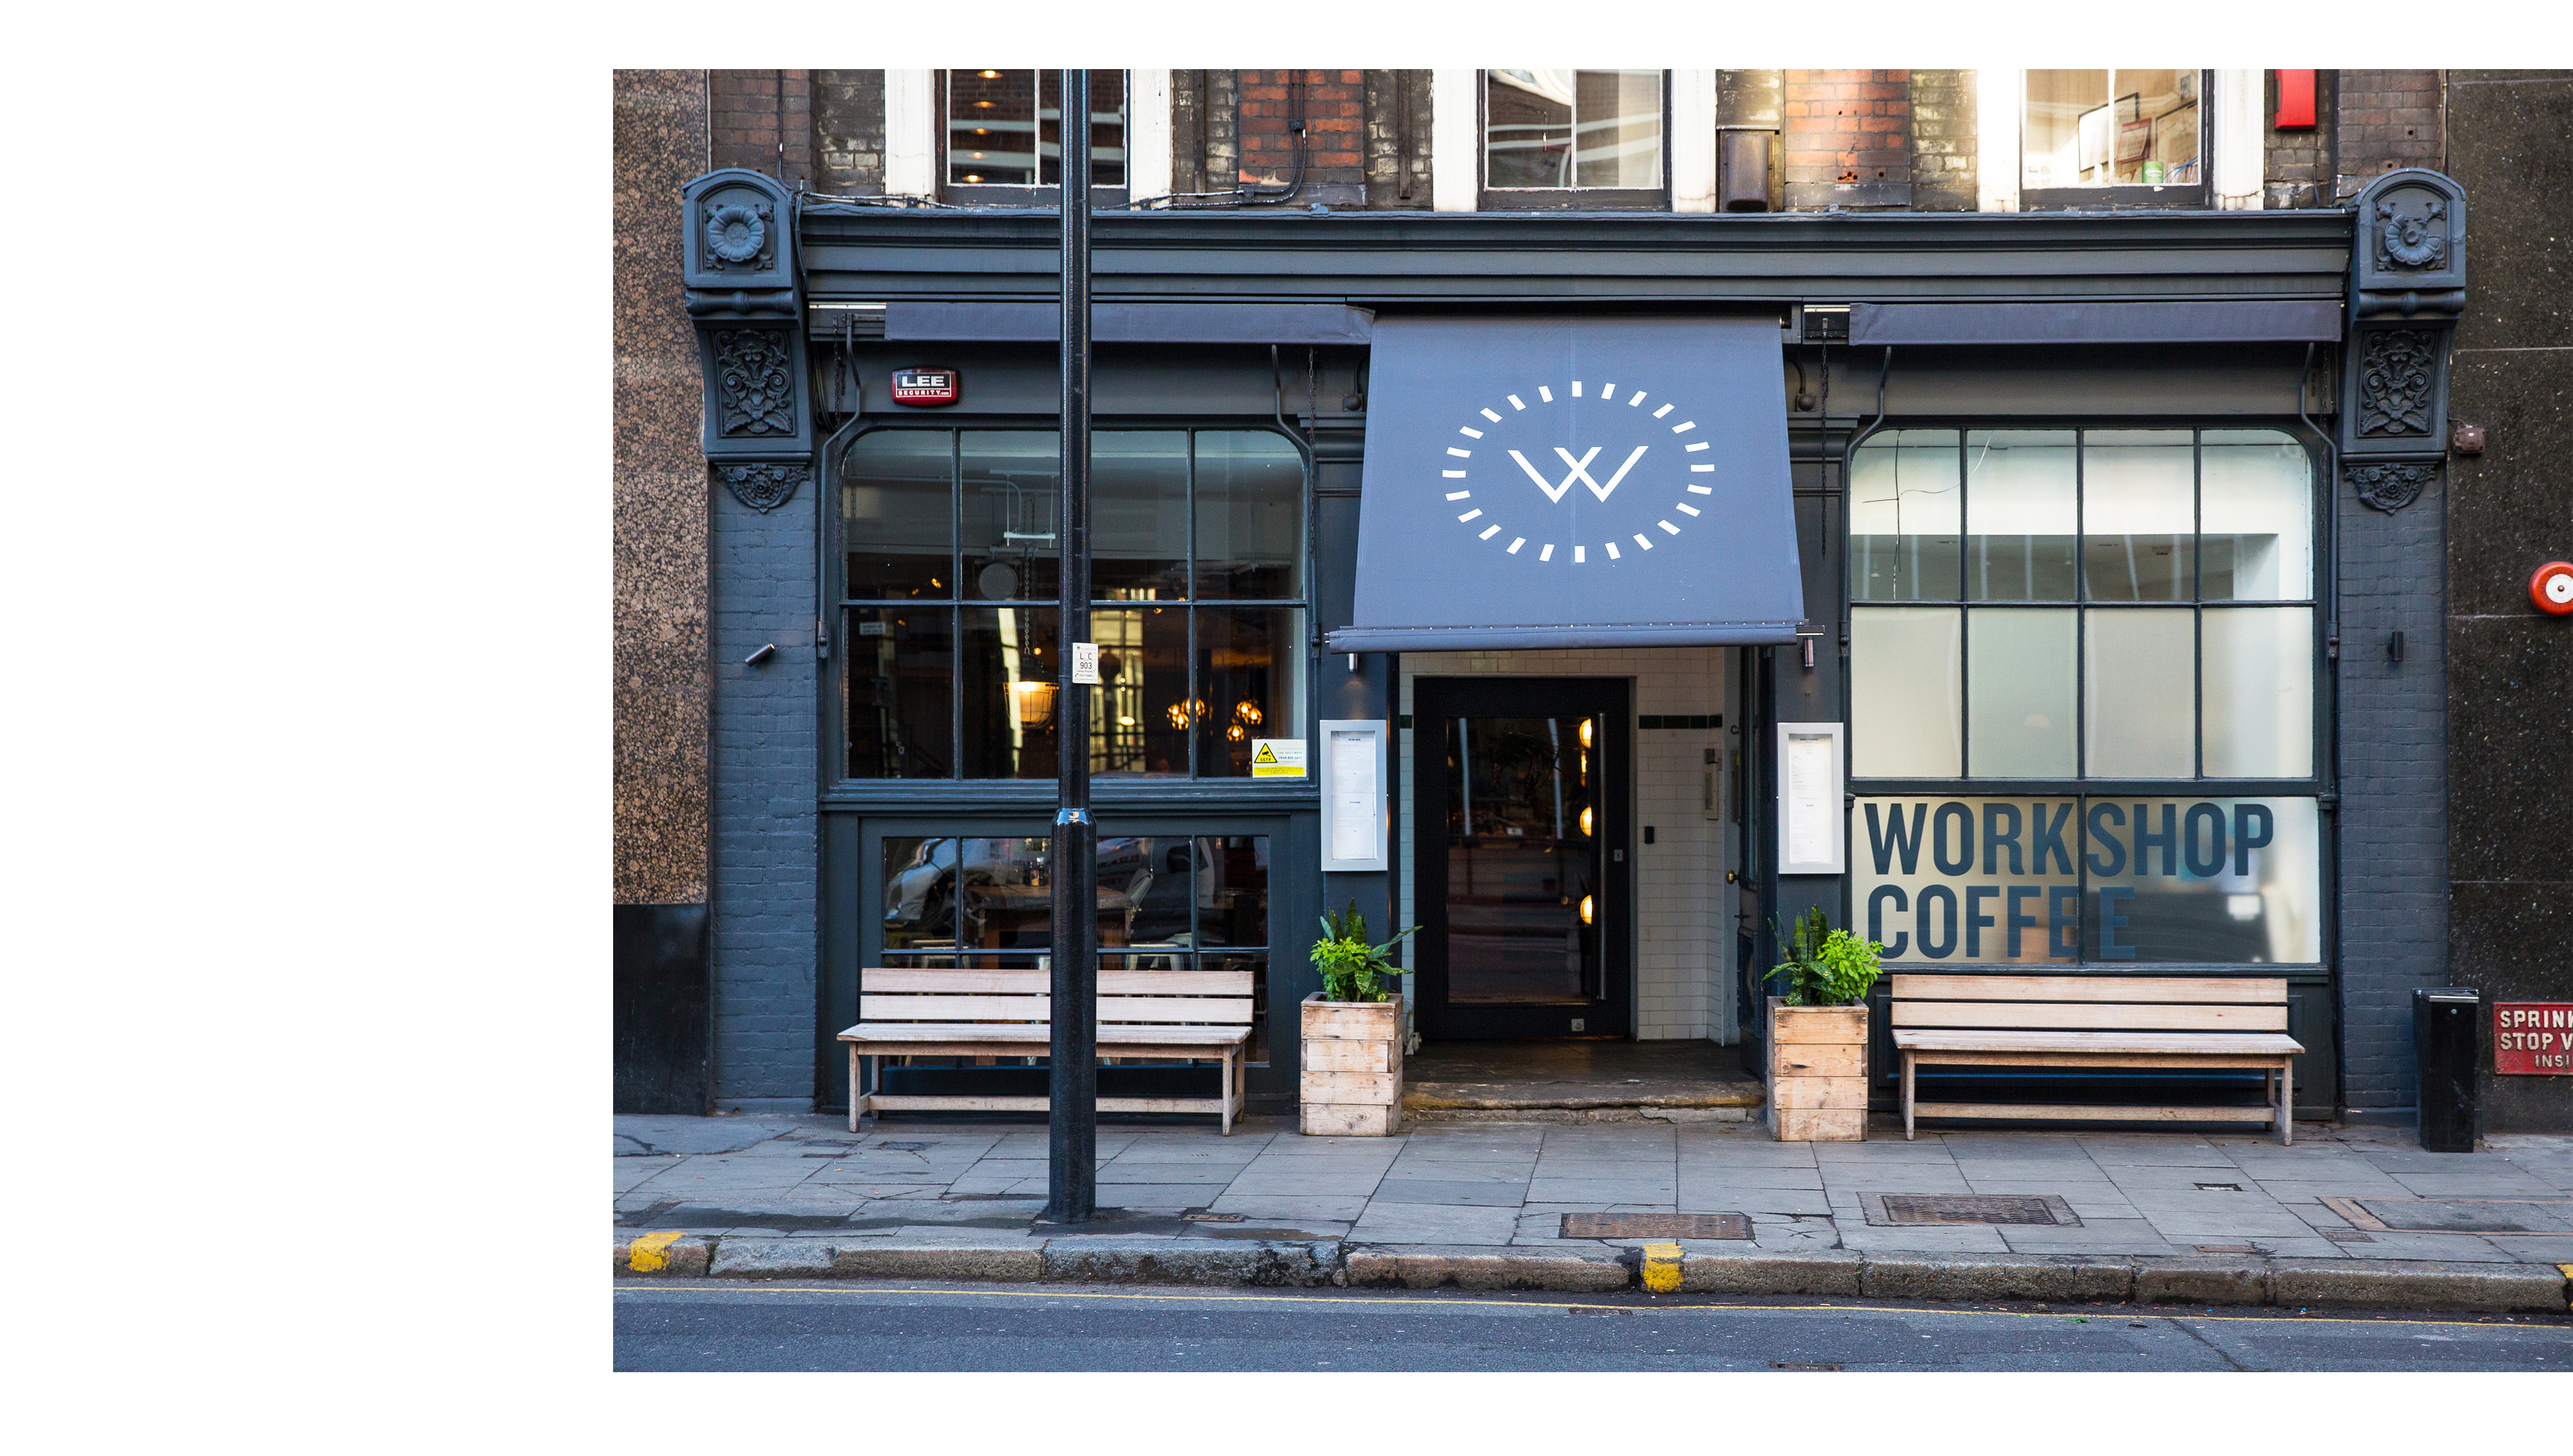 Workshop Coffee London